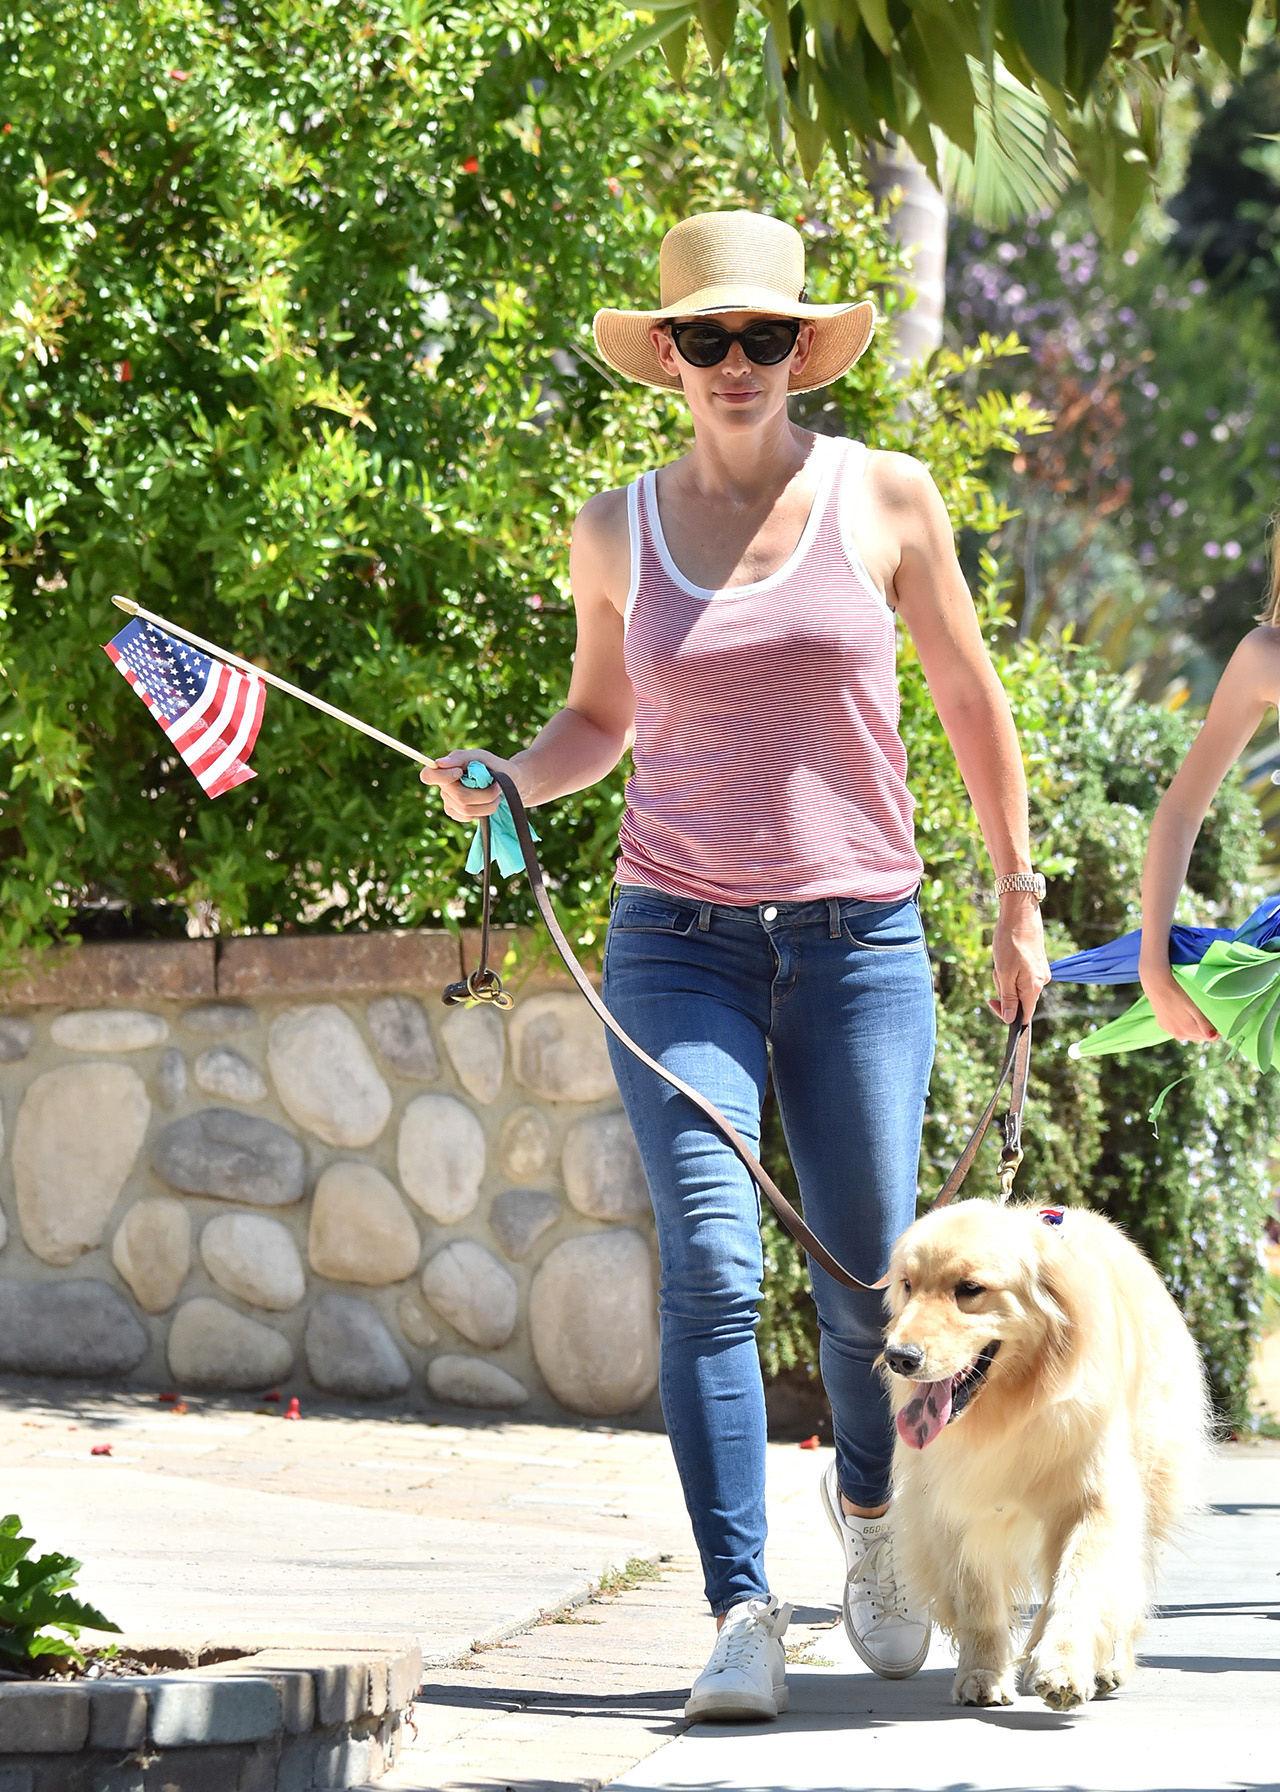 Ben Affleck and Jennifer garner take their kids to the annual Parade for 4th of July in Pacific Palisades, Los Angeles.  <P> Pictured: Jennifer Garner <B>Ref: SPL1532809  040717  </B><BR/> Picture by: Fern / Splash News<BR/> </P><P> <B>Splash News and Pictures</B><BR/> Los Angeles:310-821-2666<BR/> New York:212-619-2666<BR/> London:870-934-2666<BR/> photodesk@splashnews.com<BR/> </P>